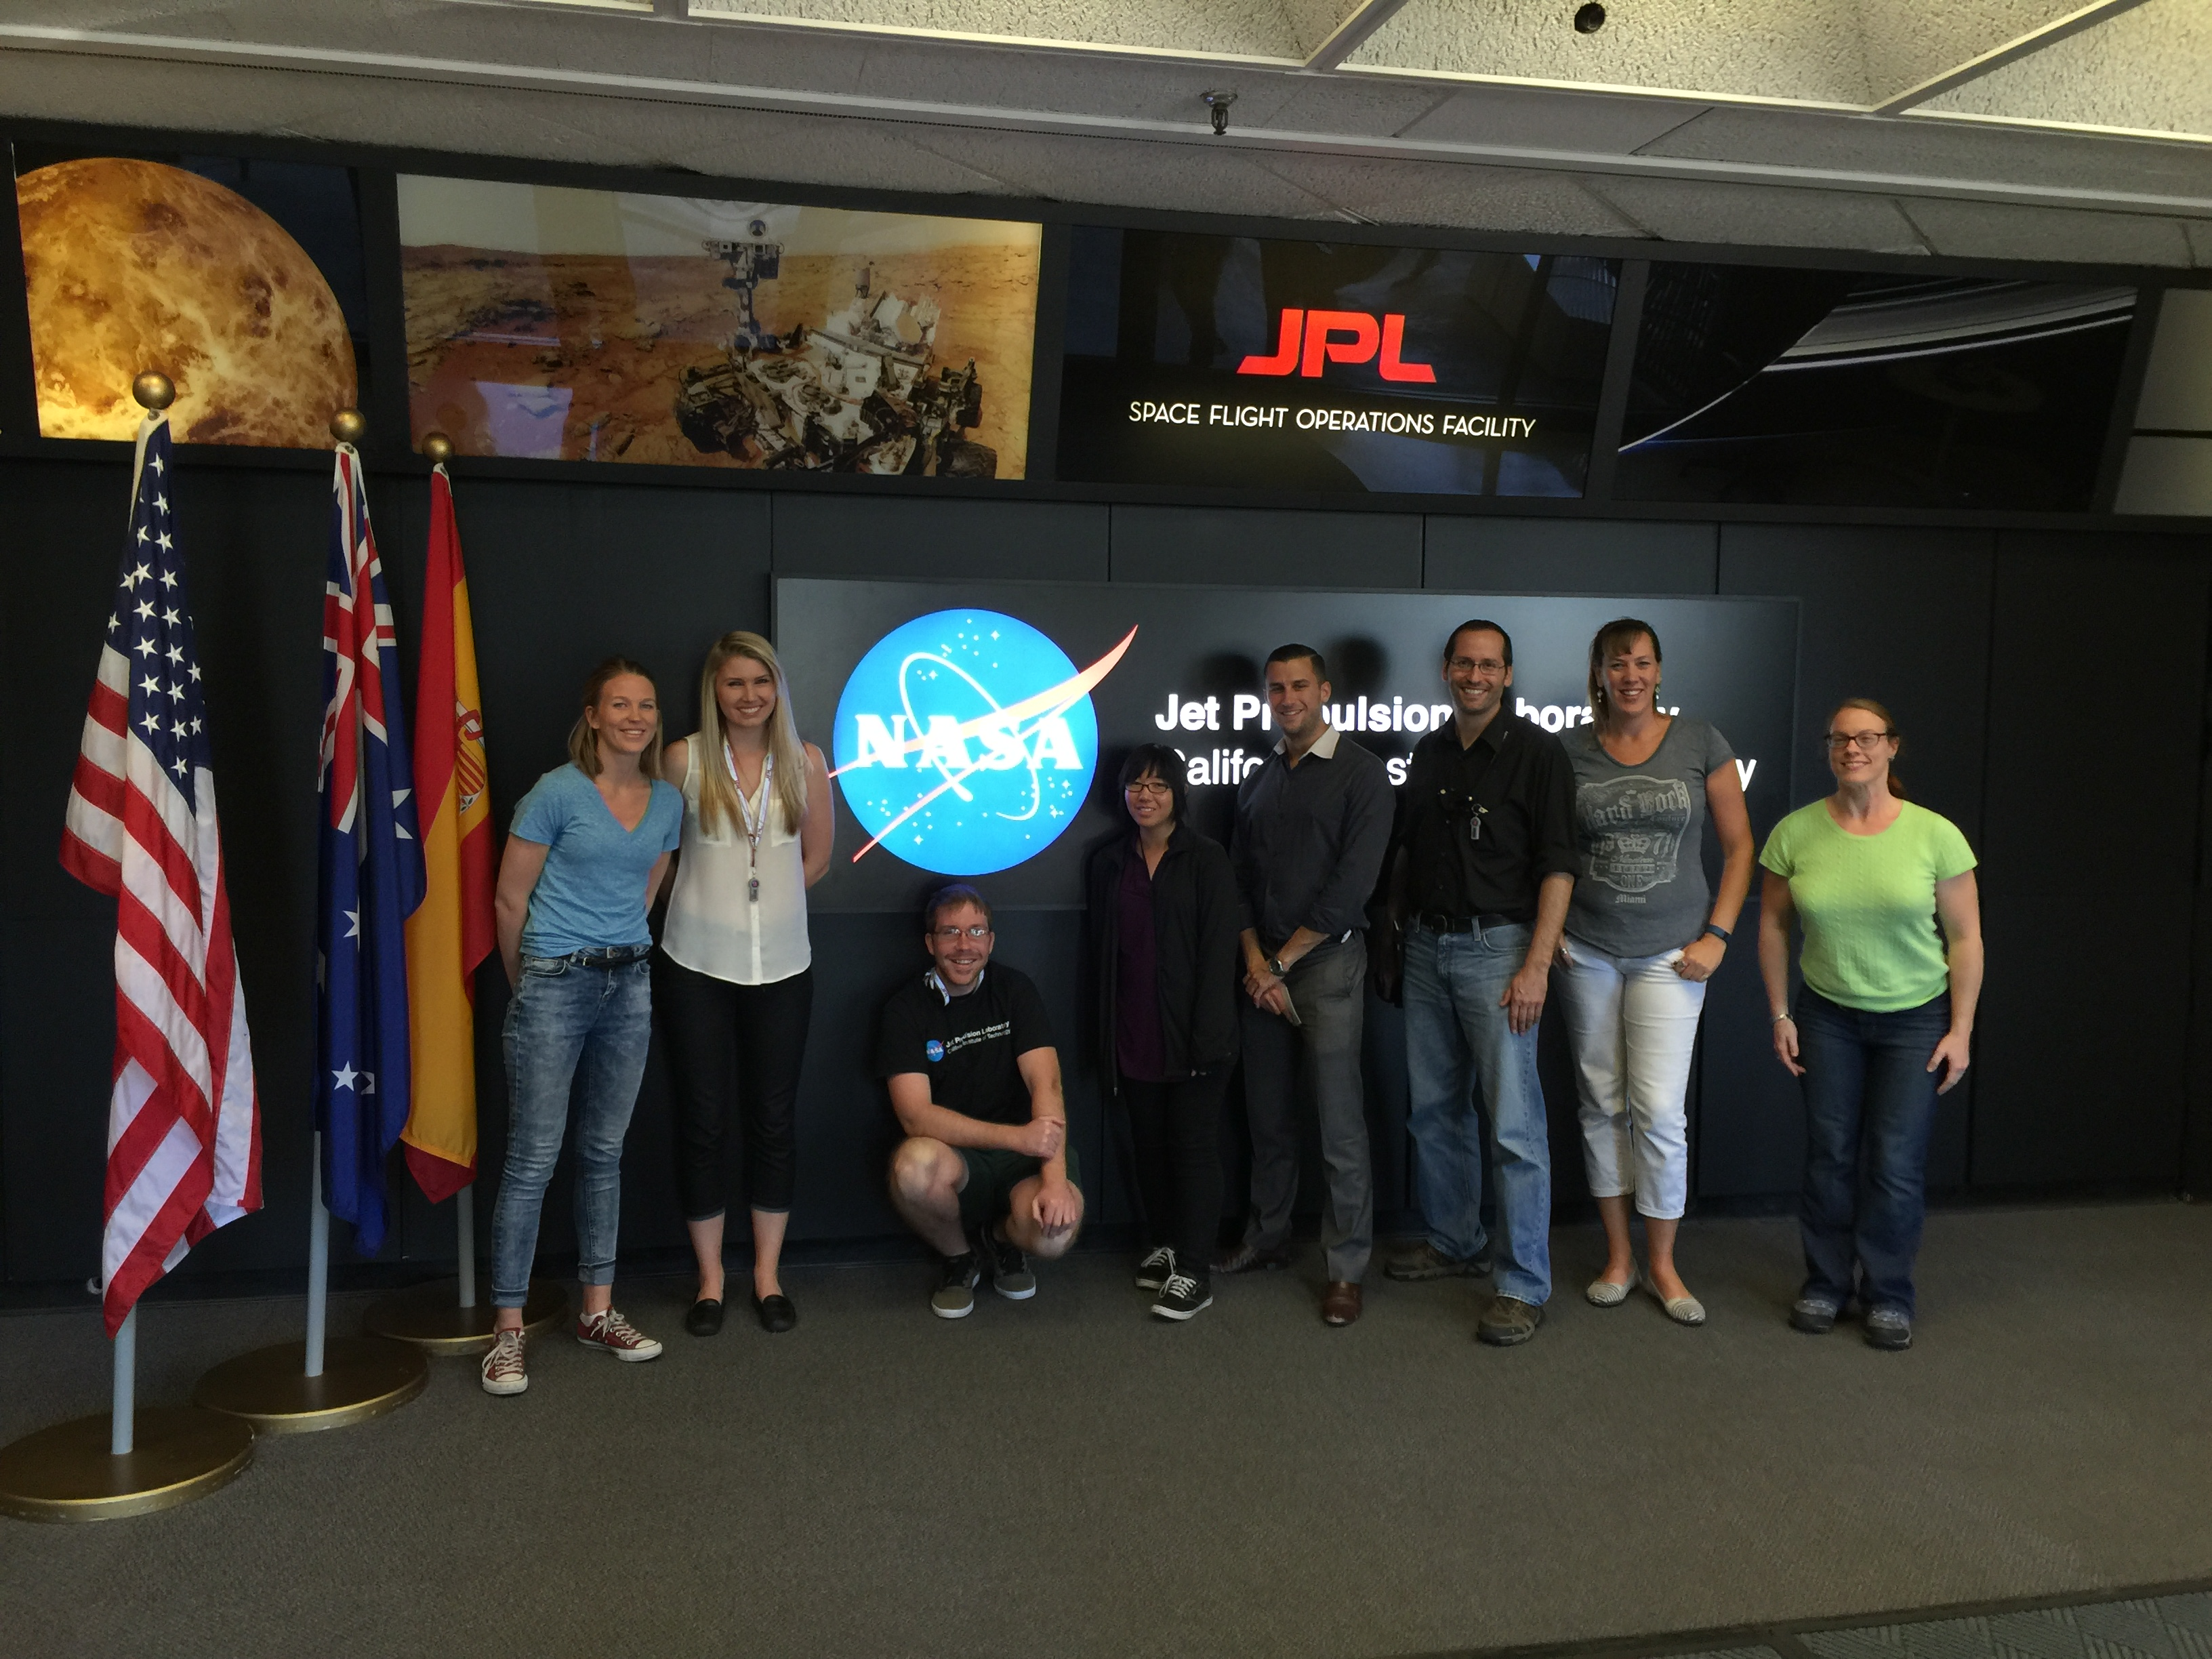 CIRFA PhD student Martine Mostervik Espeseth is currently studying abroad at NASA Jet Propulsion Laboratory (JPL) in California. From left: Martine Espeseth, Brittany Zajic, Mark Barker, Erika Higa, Steven Kerns, Nick Rousseau, Christine Elowitt and Emily Beck.